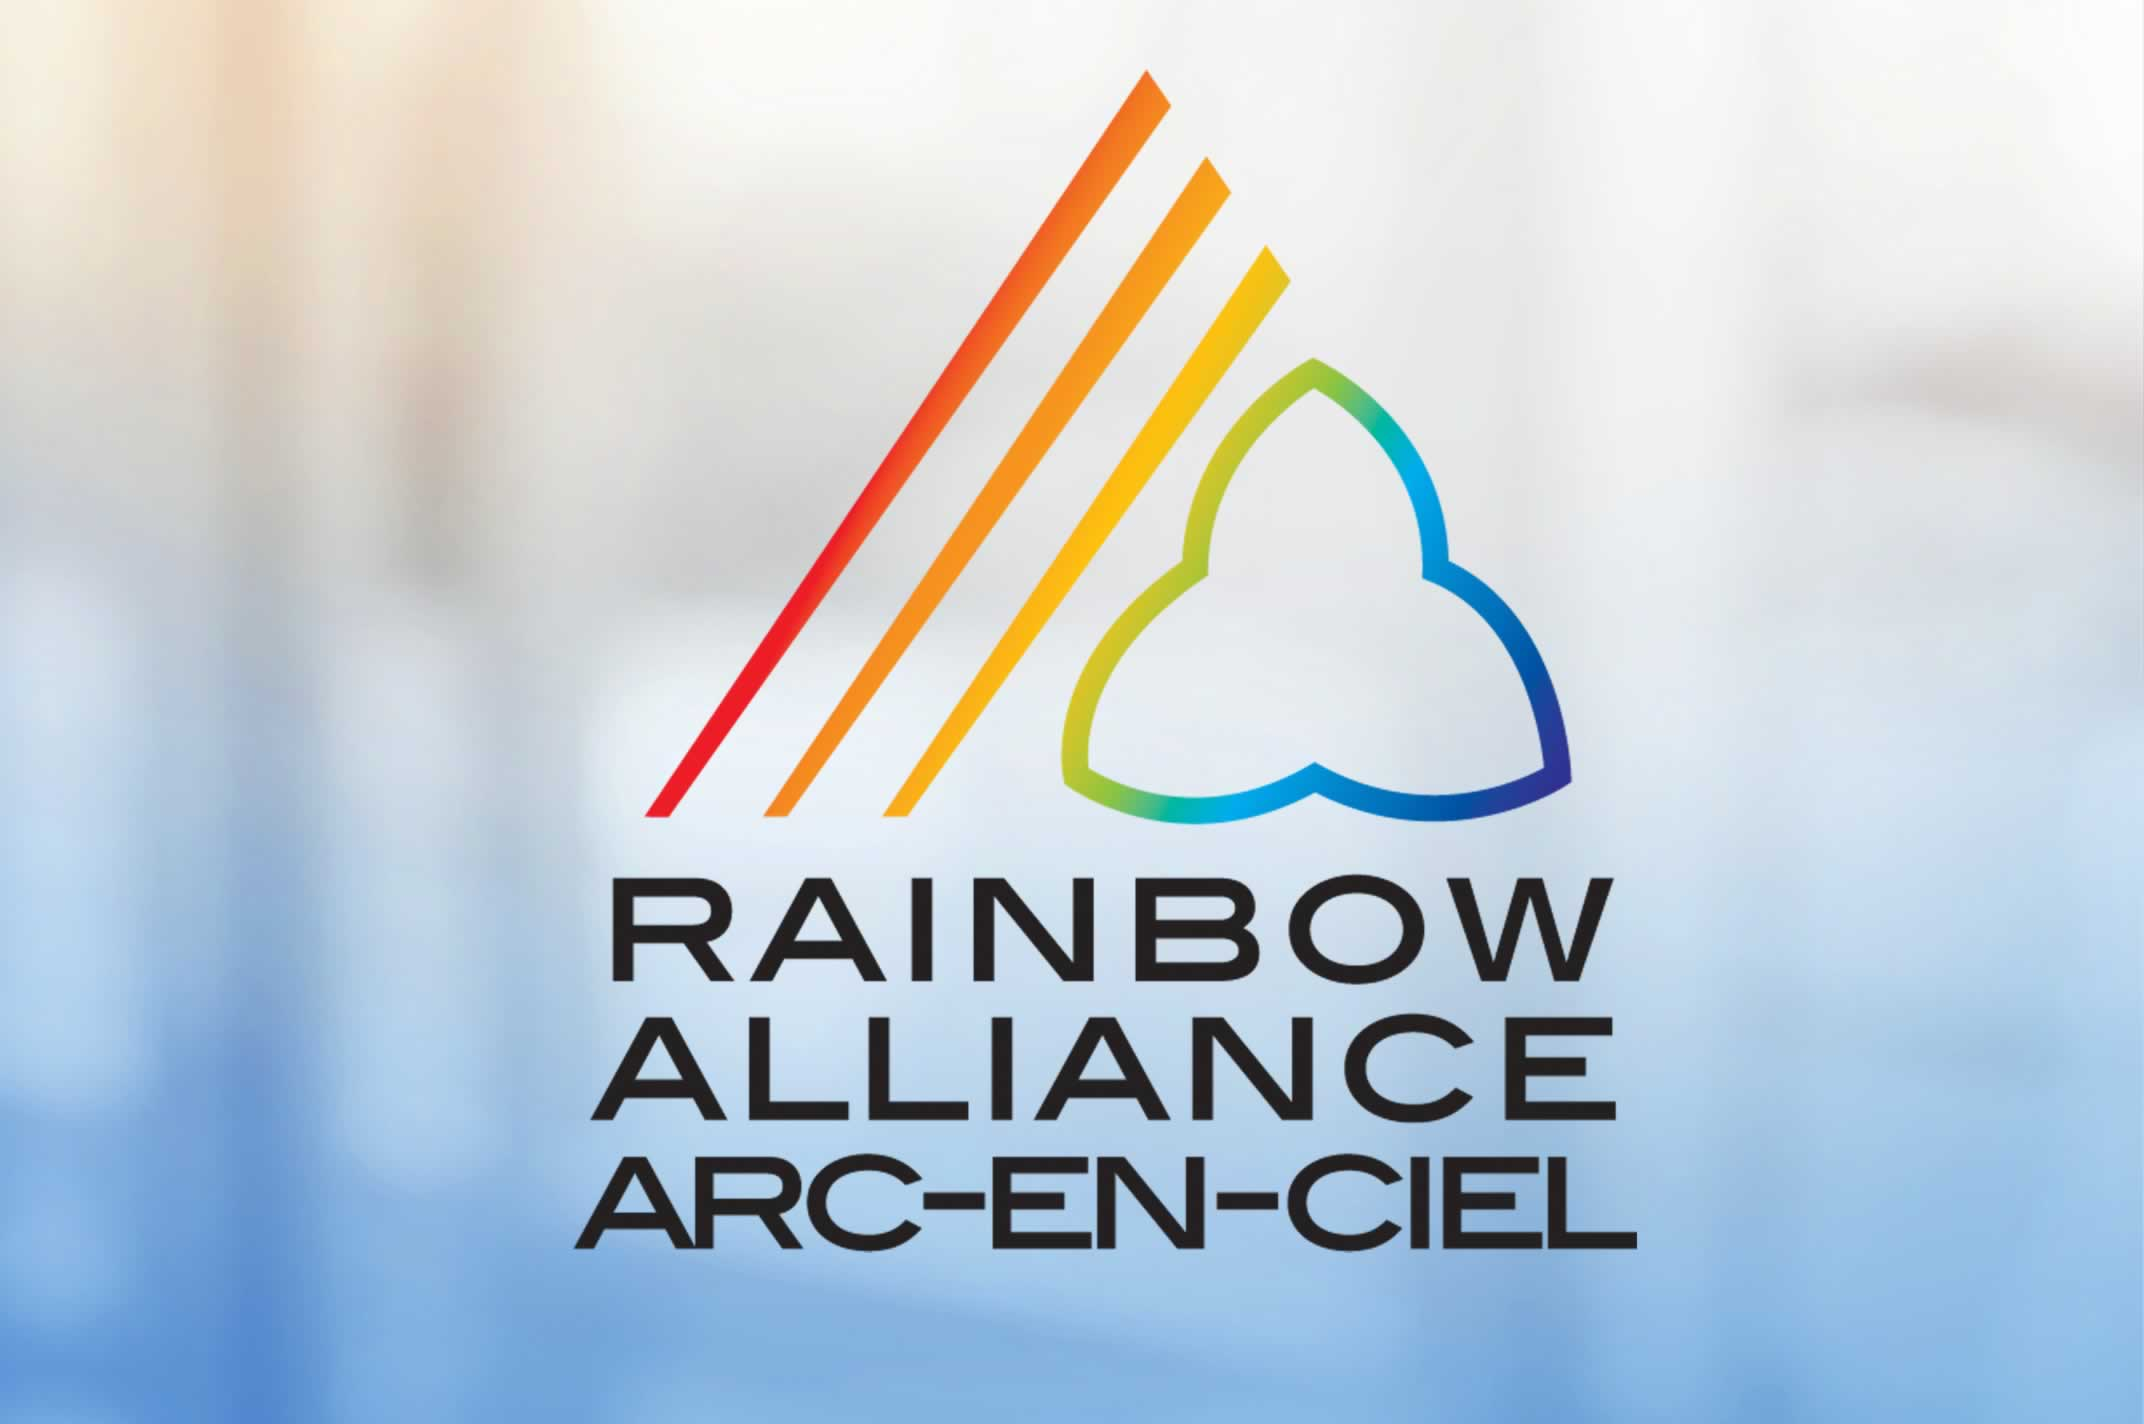 Rainbow alliance arc-en-ciel logo